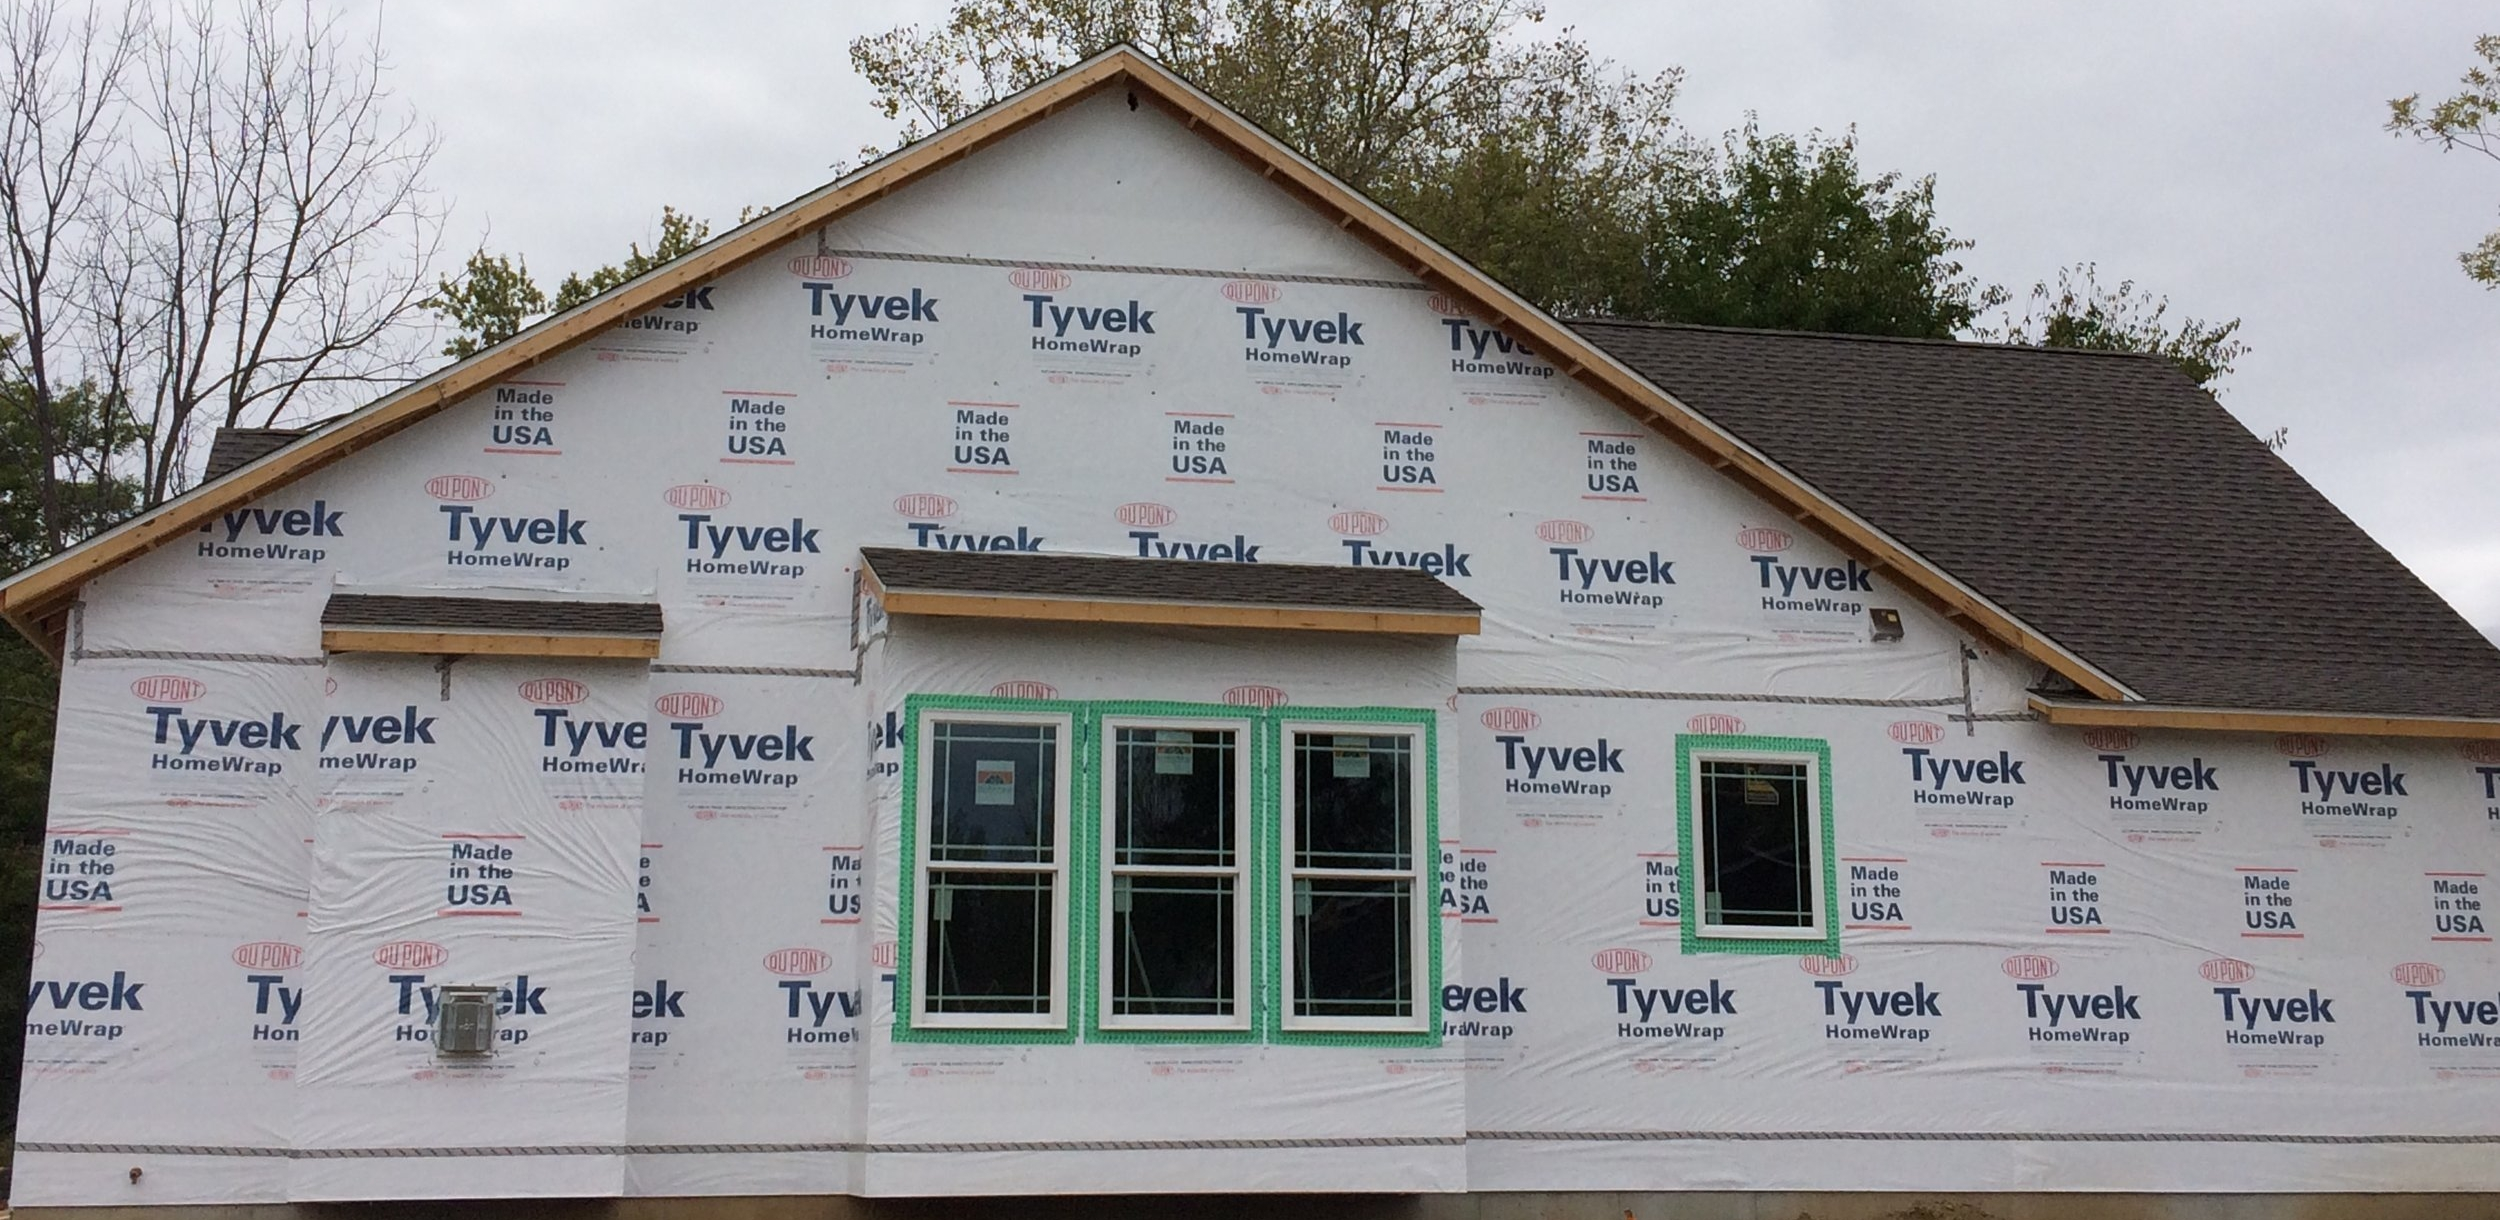 Tyvek Home Wrap - Tyvek helps prevent the infiltration of air and water, but lets water vapor escape to prevent rot and mold inside walls. There is no substitute. Tyvek performs like no other house wrap on the market.